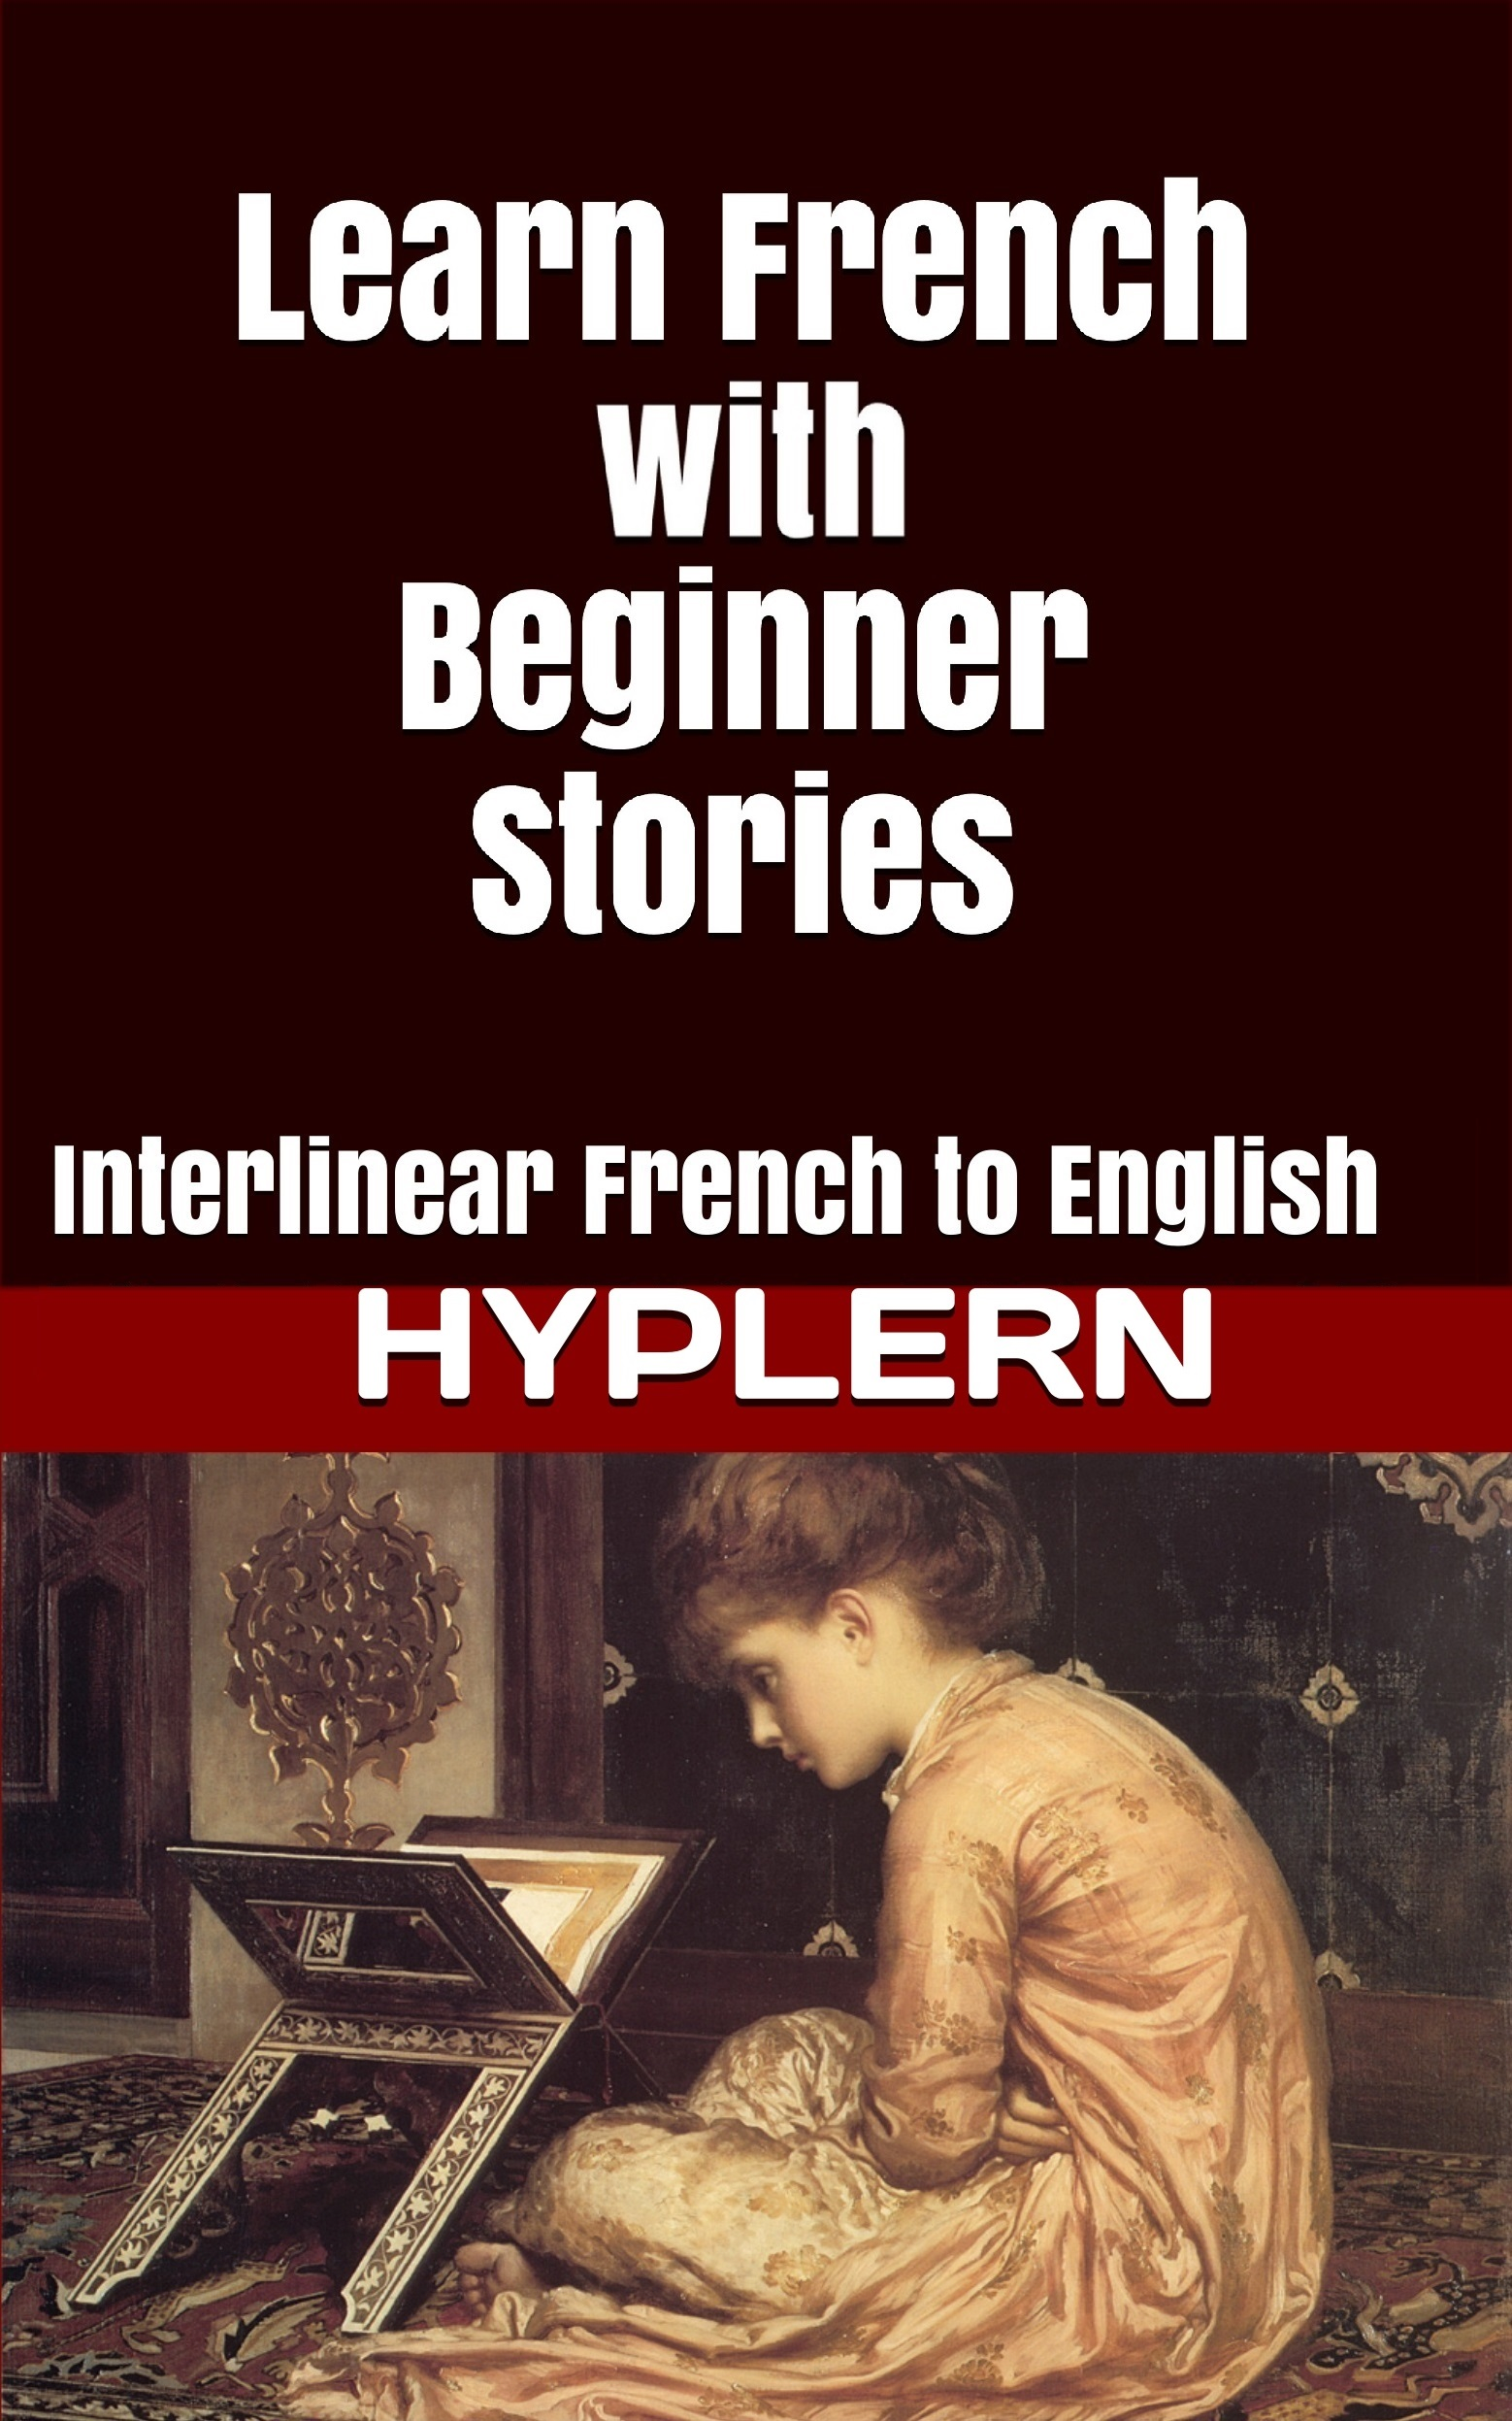 HypLern - Learn French with Beginner Stories - Interlinear French to English